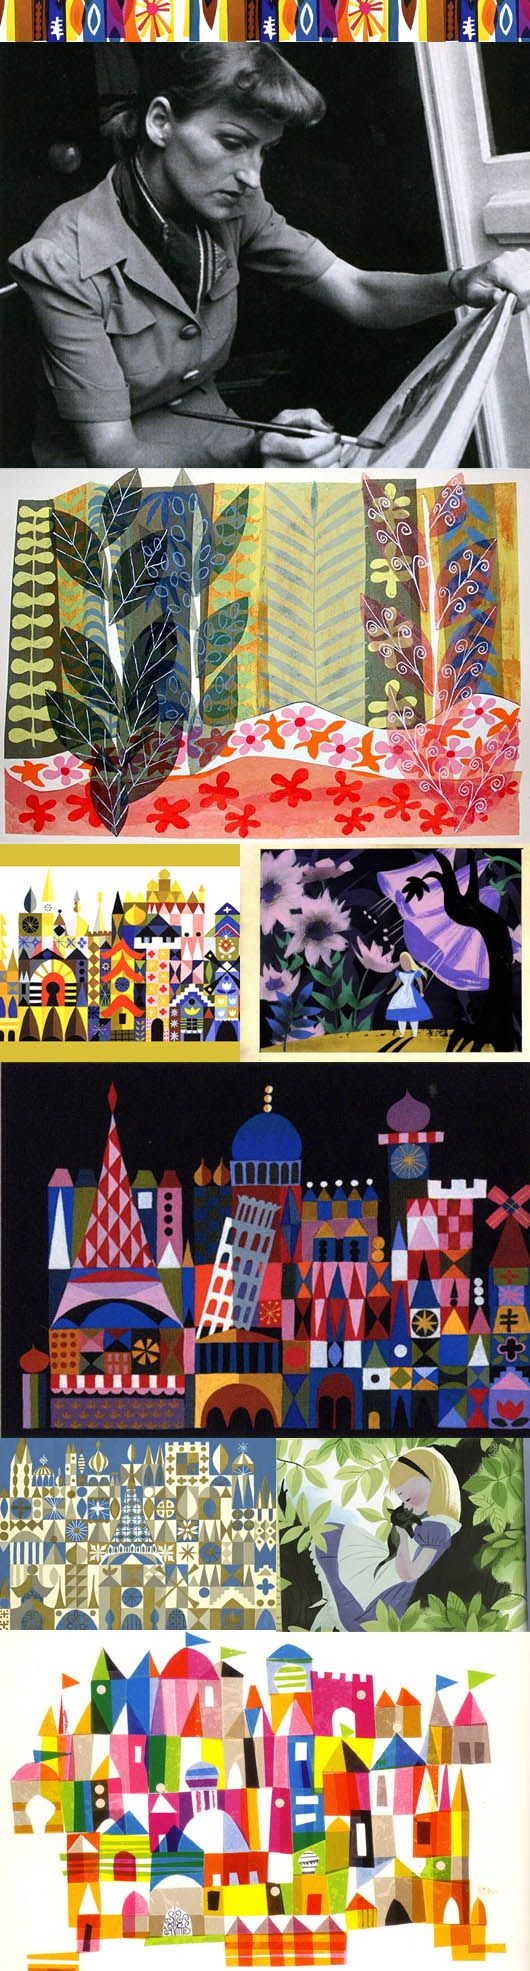 "An imaginative colorist and designer, Mary Blair helped introduce a modernist style to Walt Disney and his studio, and for nearly 30 years, he touted her inspirational work for his films and theme parks alike. Animator Marc Davis, who put Blair's exciting use of color on a par with Henri Matisse, recalled, ""She brought modern art to Walt in a way that no one else did. He was so excited about her work."""